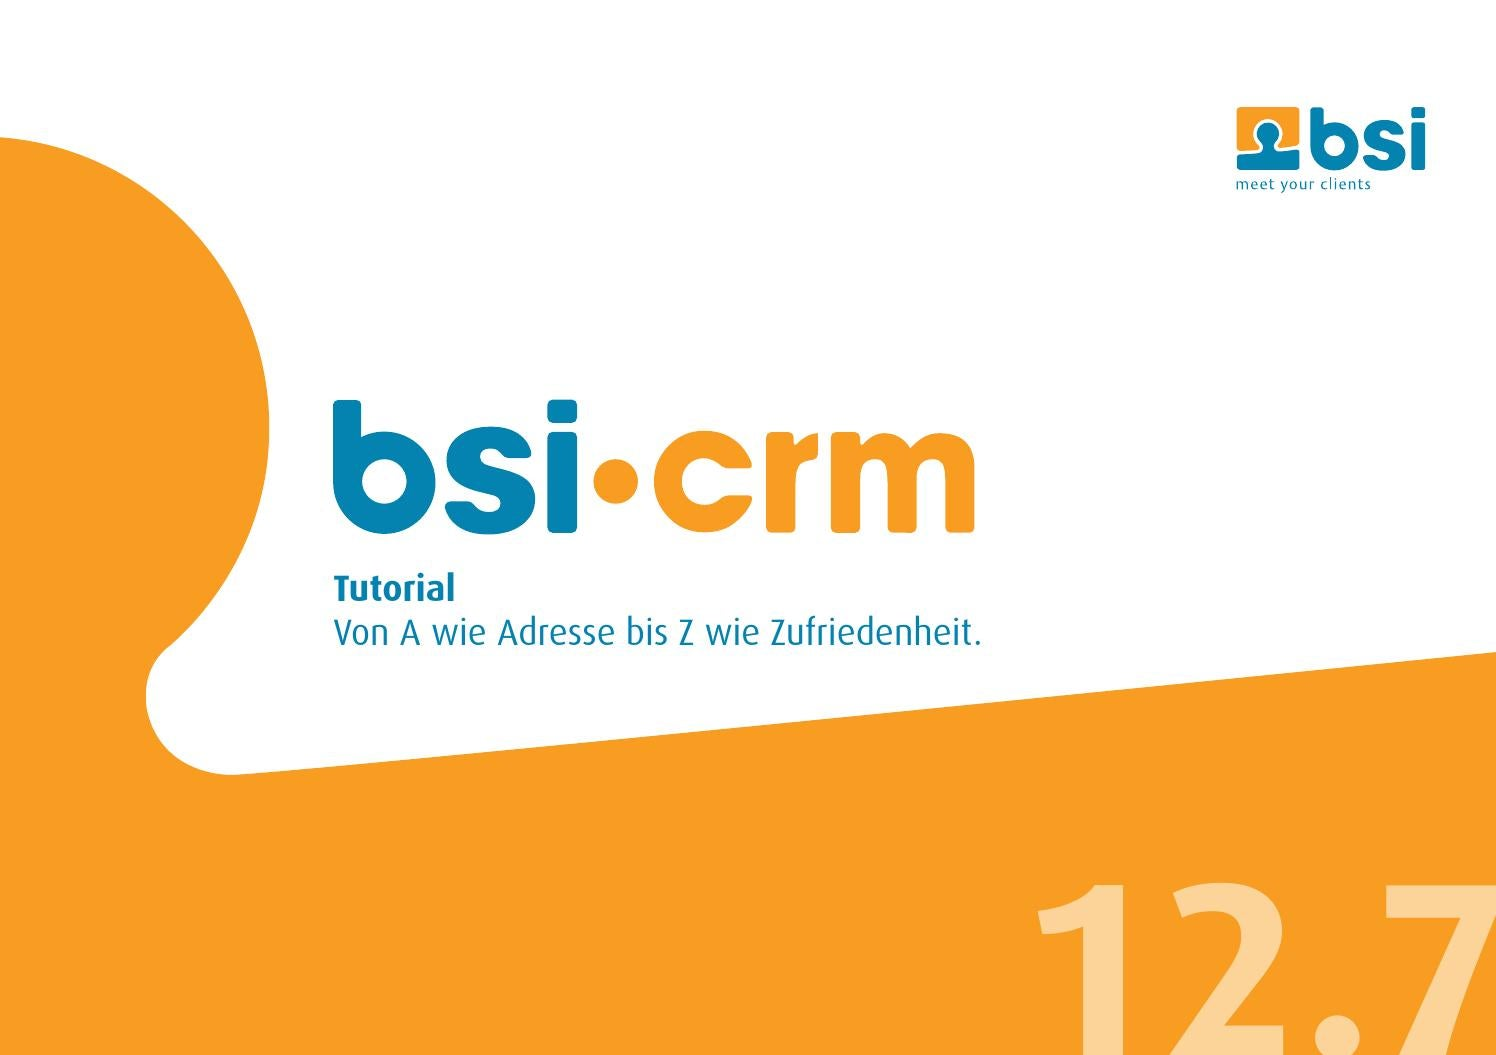 Bsi Crm Tutorial 12 7 By Bsi Business Systems Integration